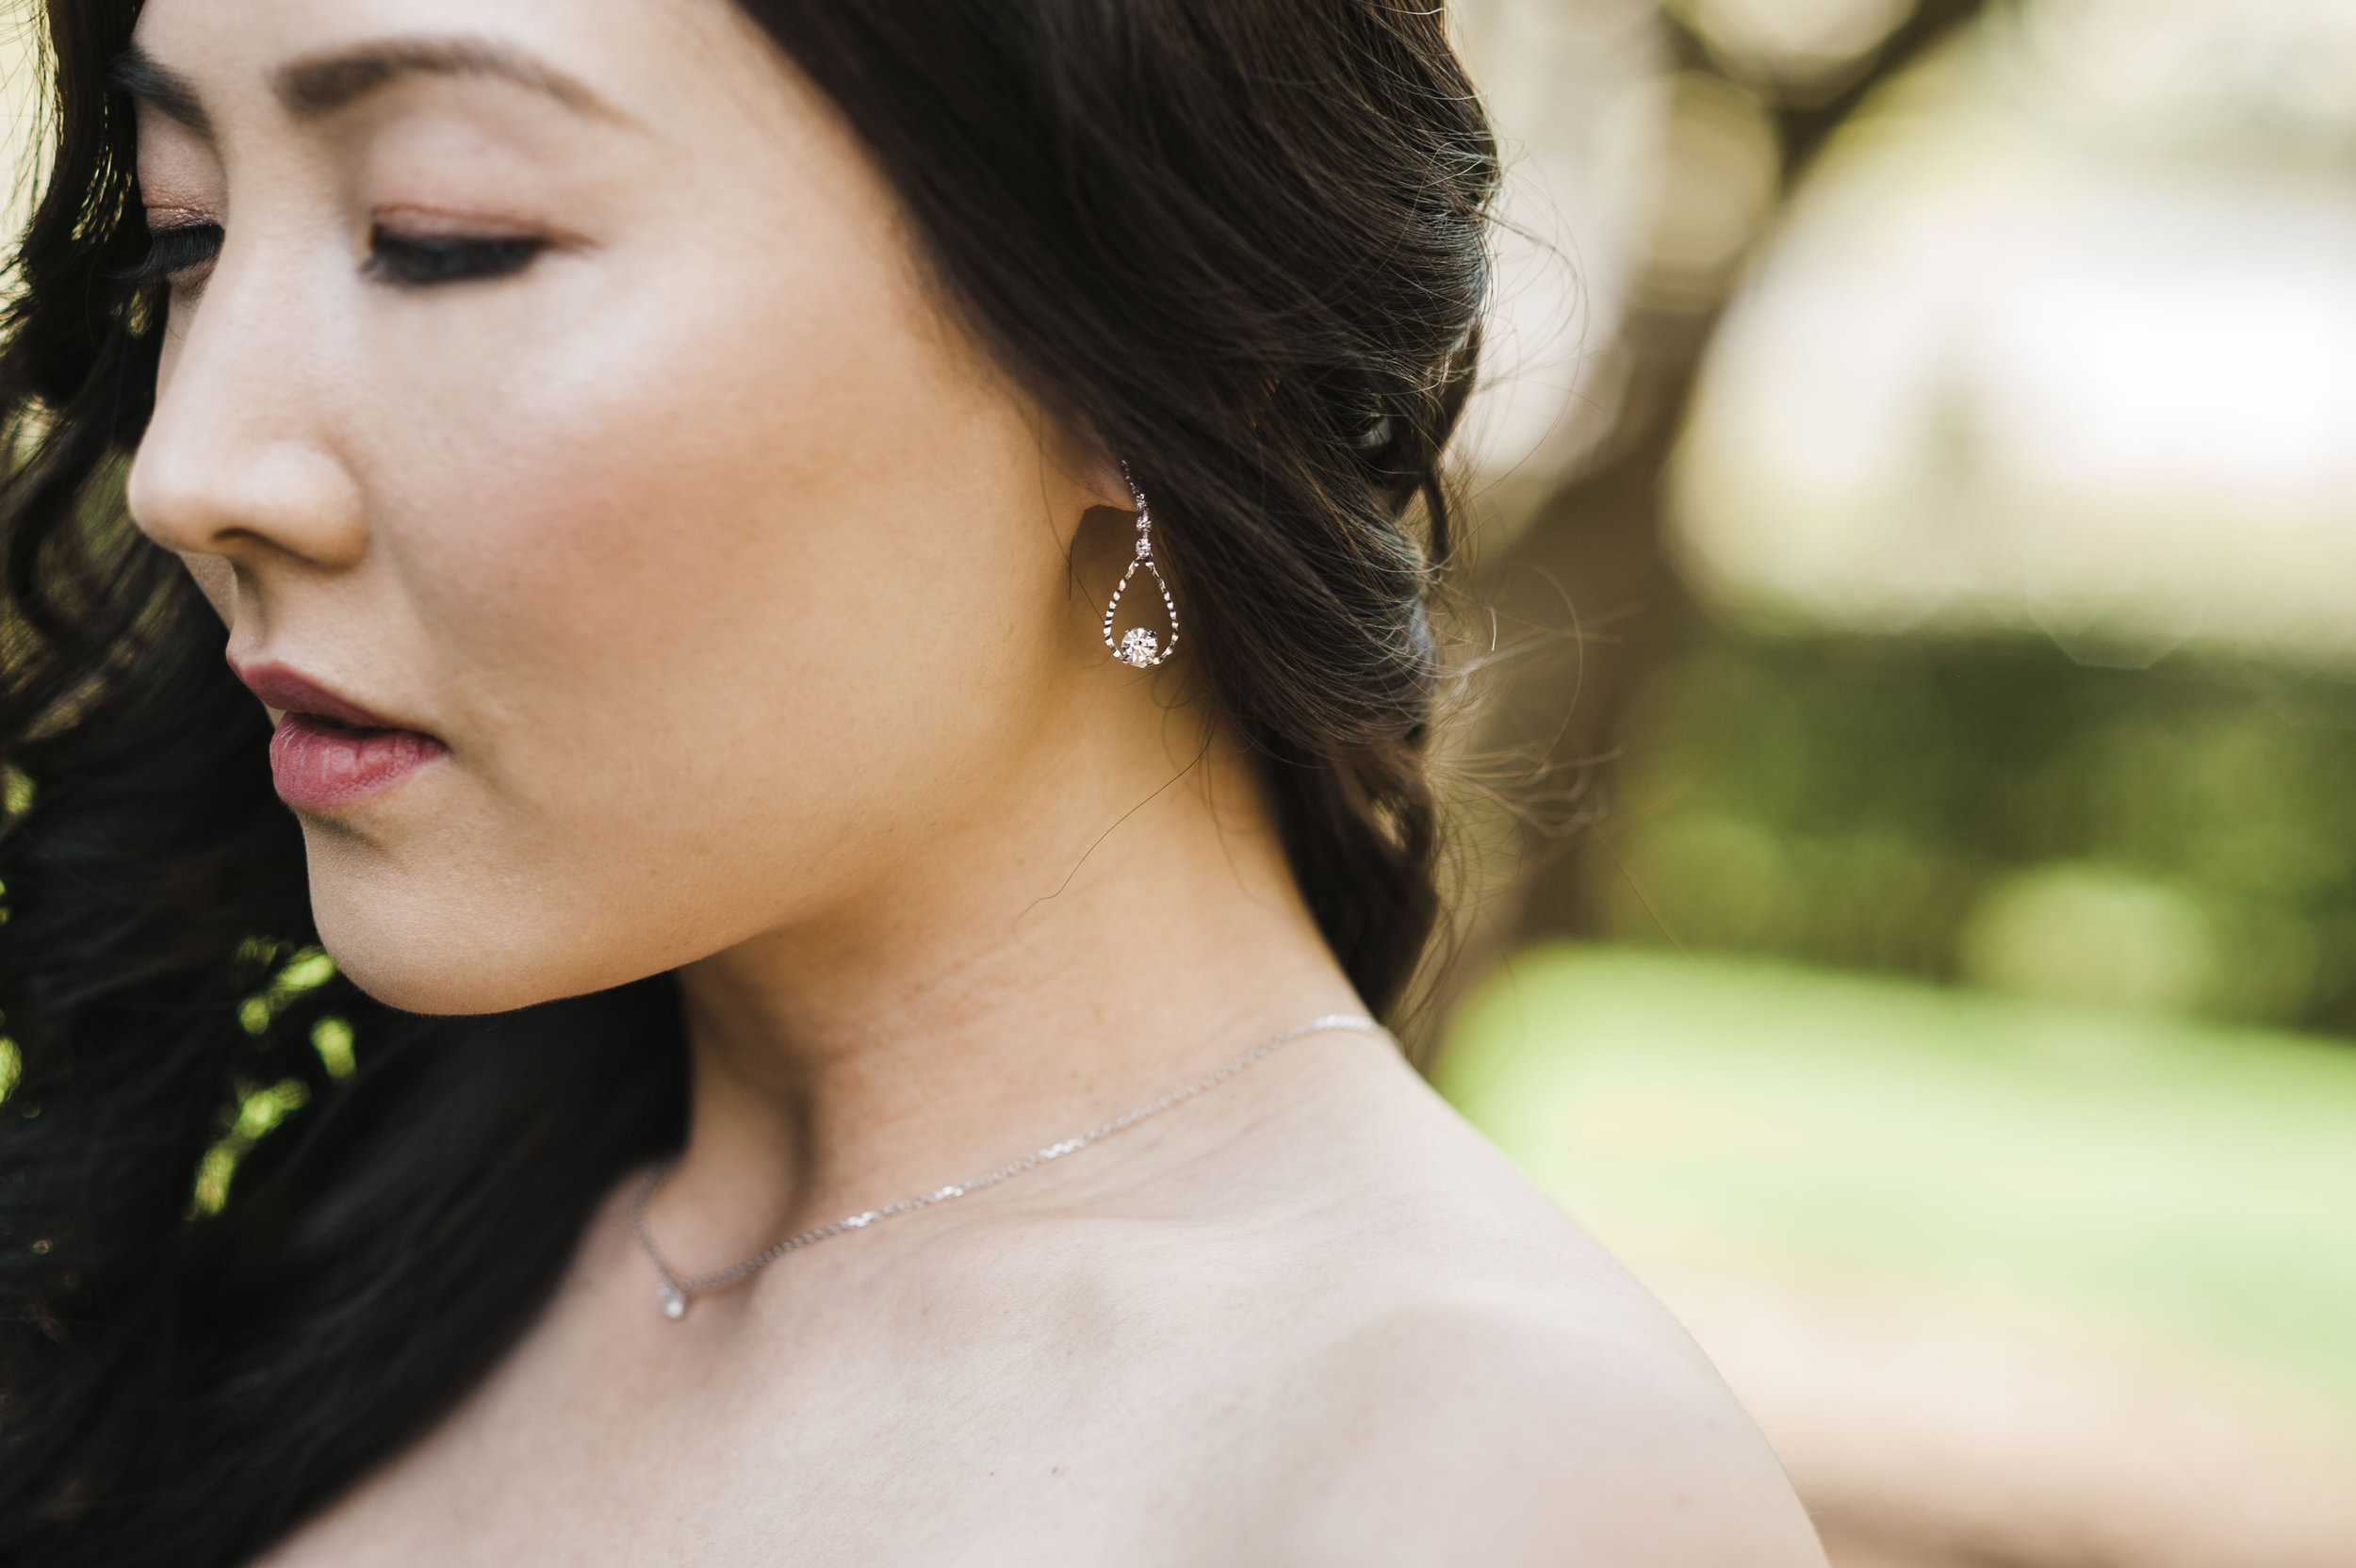 Korean wedding atlanta couple earrings